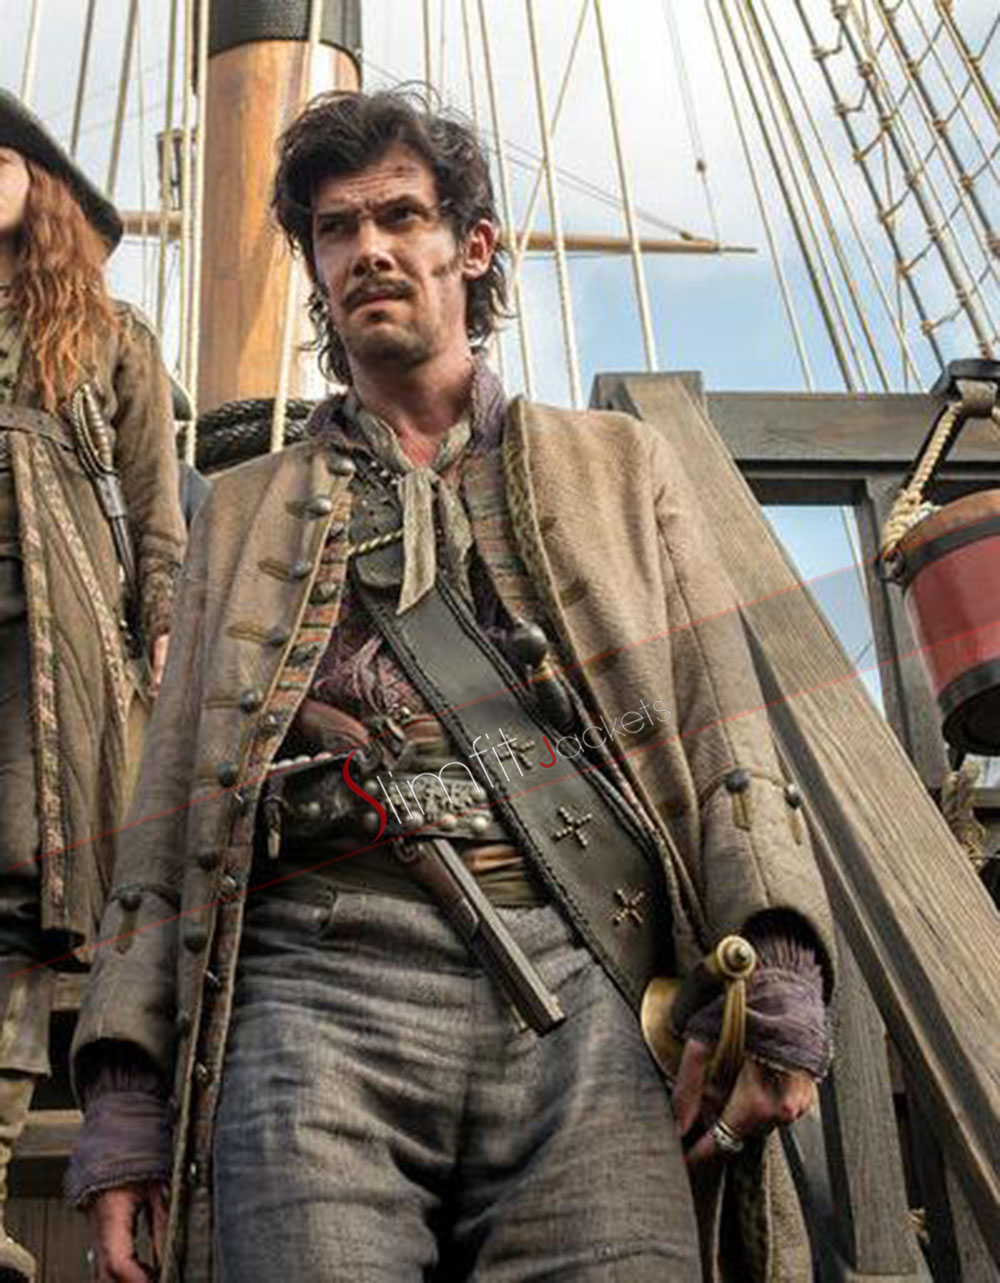 Black sails s3 pirate captain flint leather coat - Add To Compare